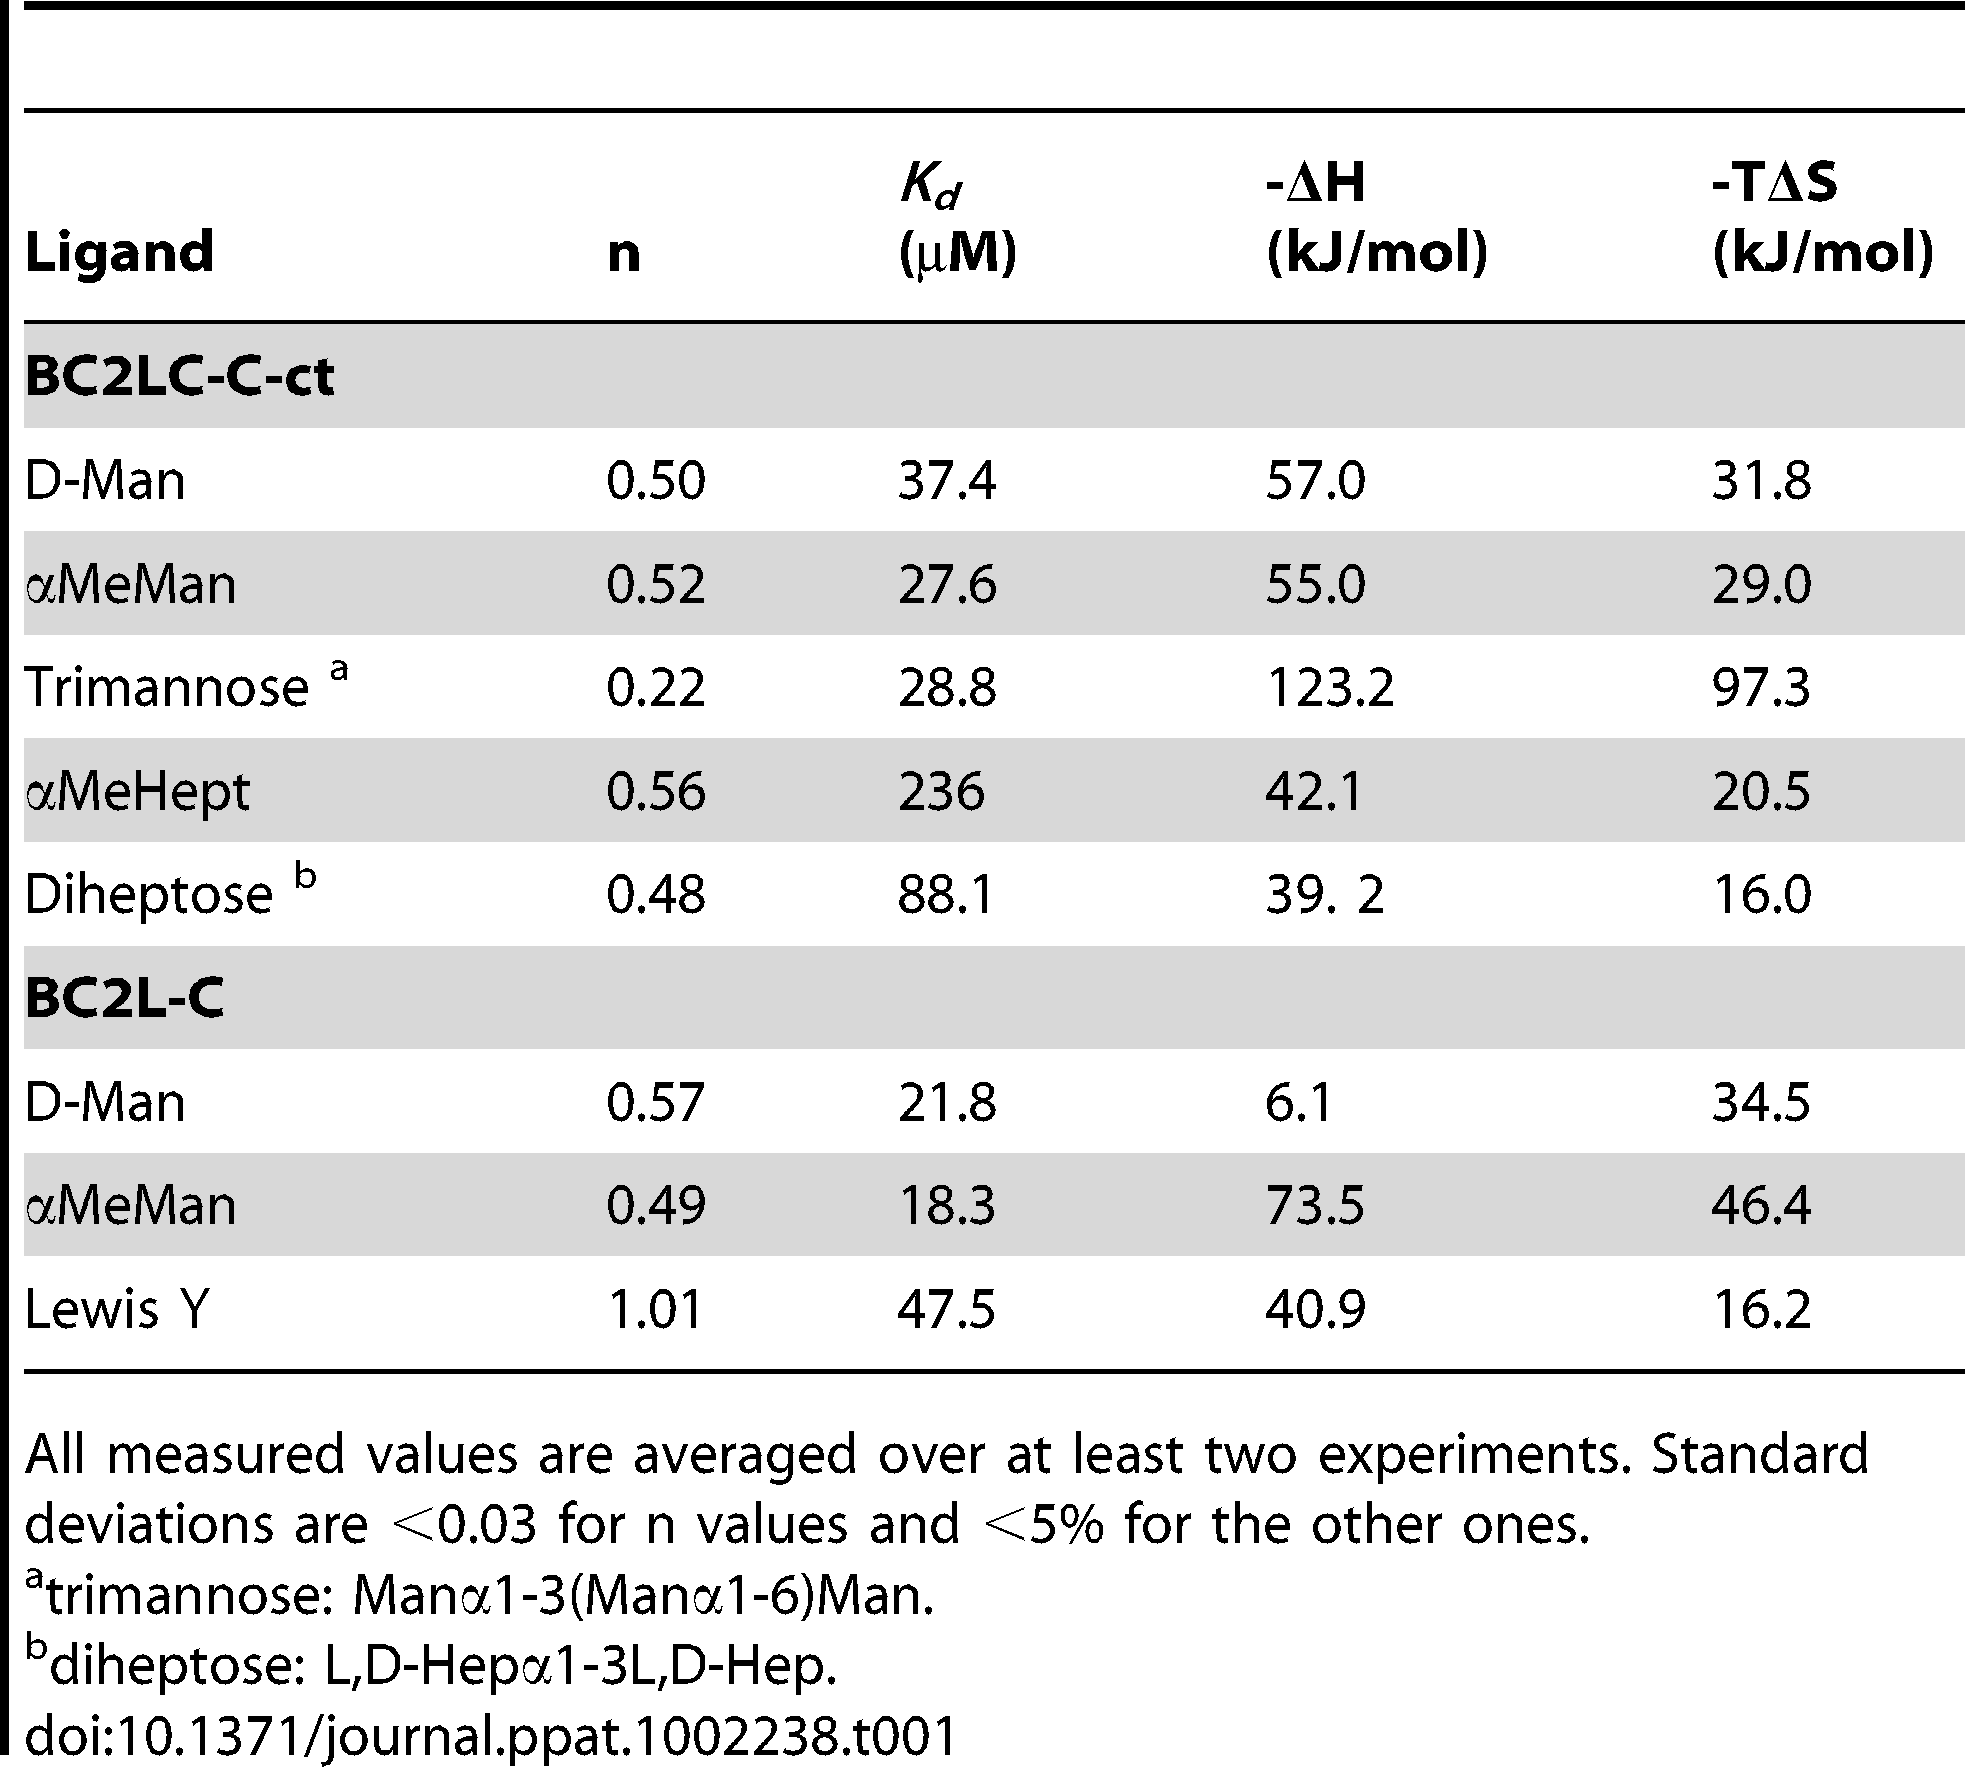 Microcalorimetry titration data for the binding of monosaccharides and oligosaccharides to BC2L-C and BC2L-C-ct.